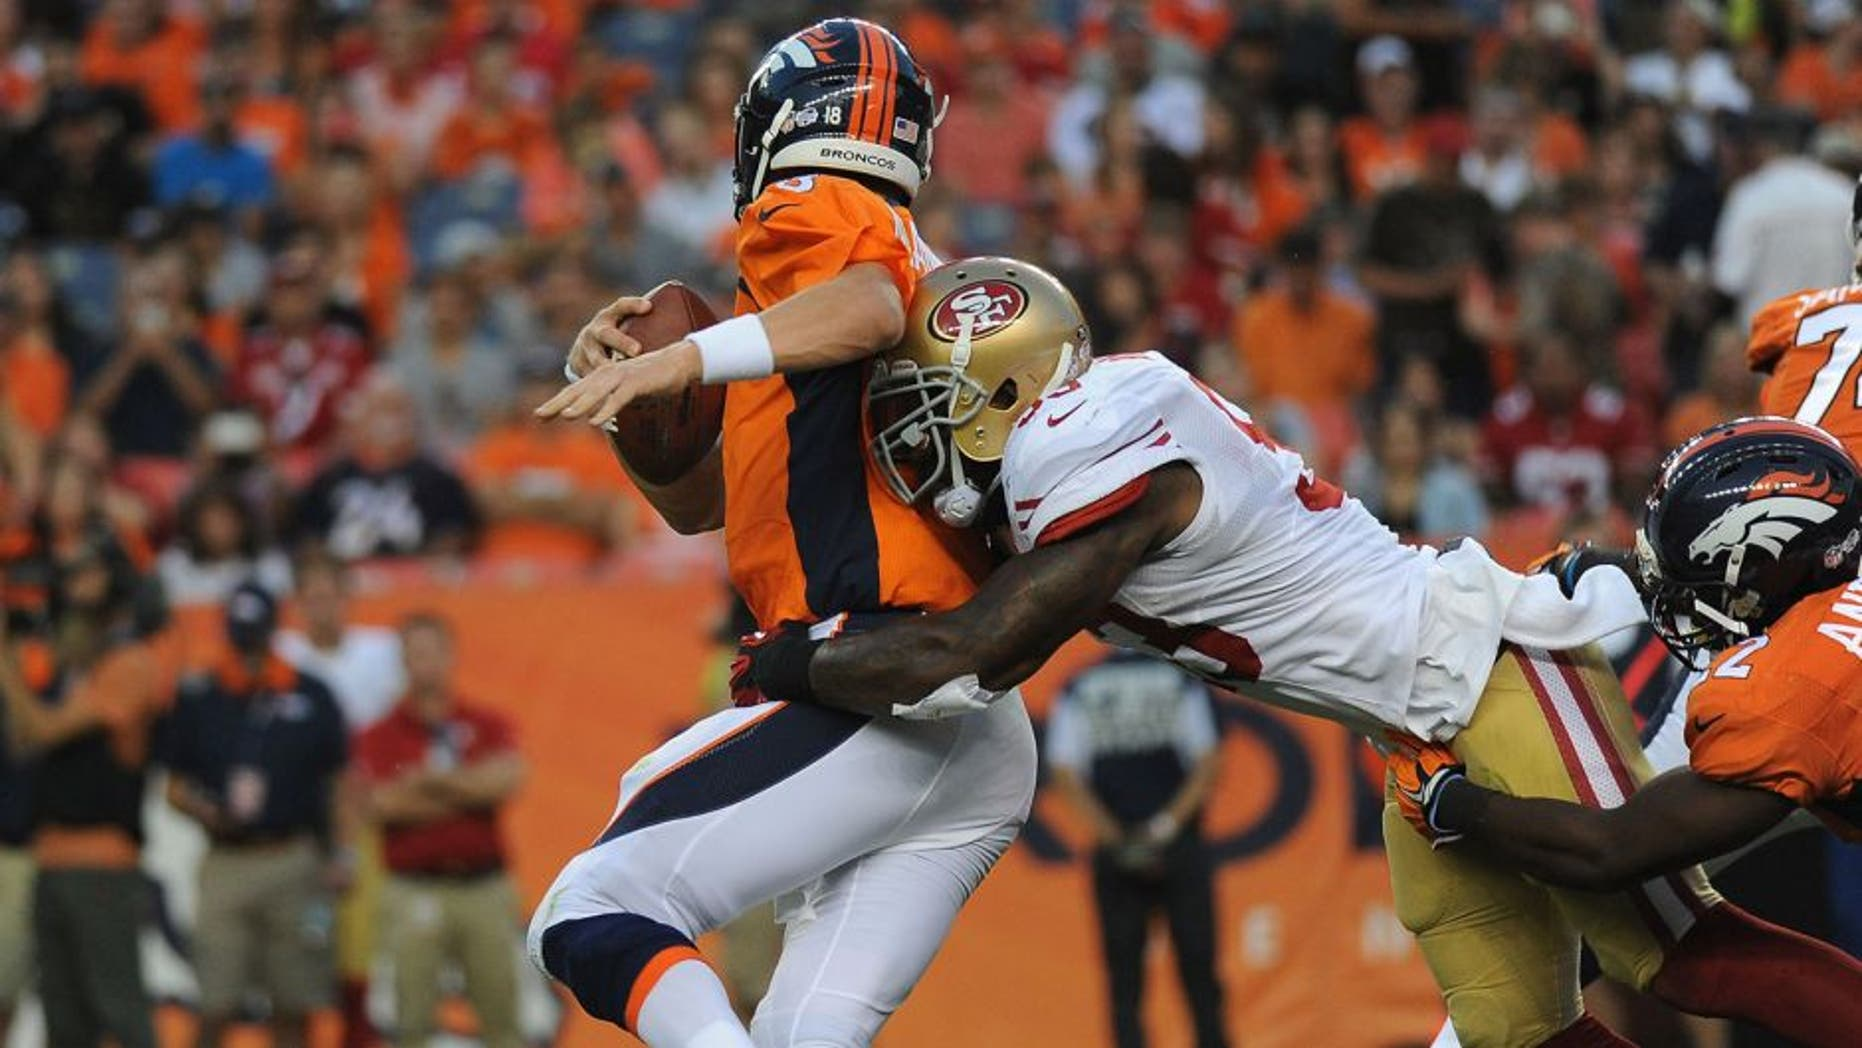 DENVER, CO - AUGUST 29: Denver Broncos quarterback Peyton Manning gets sacked by San Francisco 49ers linebacker NaVorro Bowman in the first quarter at Sports Authority Field at Mile High on Saturday, August 29, 2015. (Photo by Steve Nehf/The Denver Post via Getty Images)